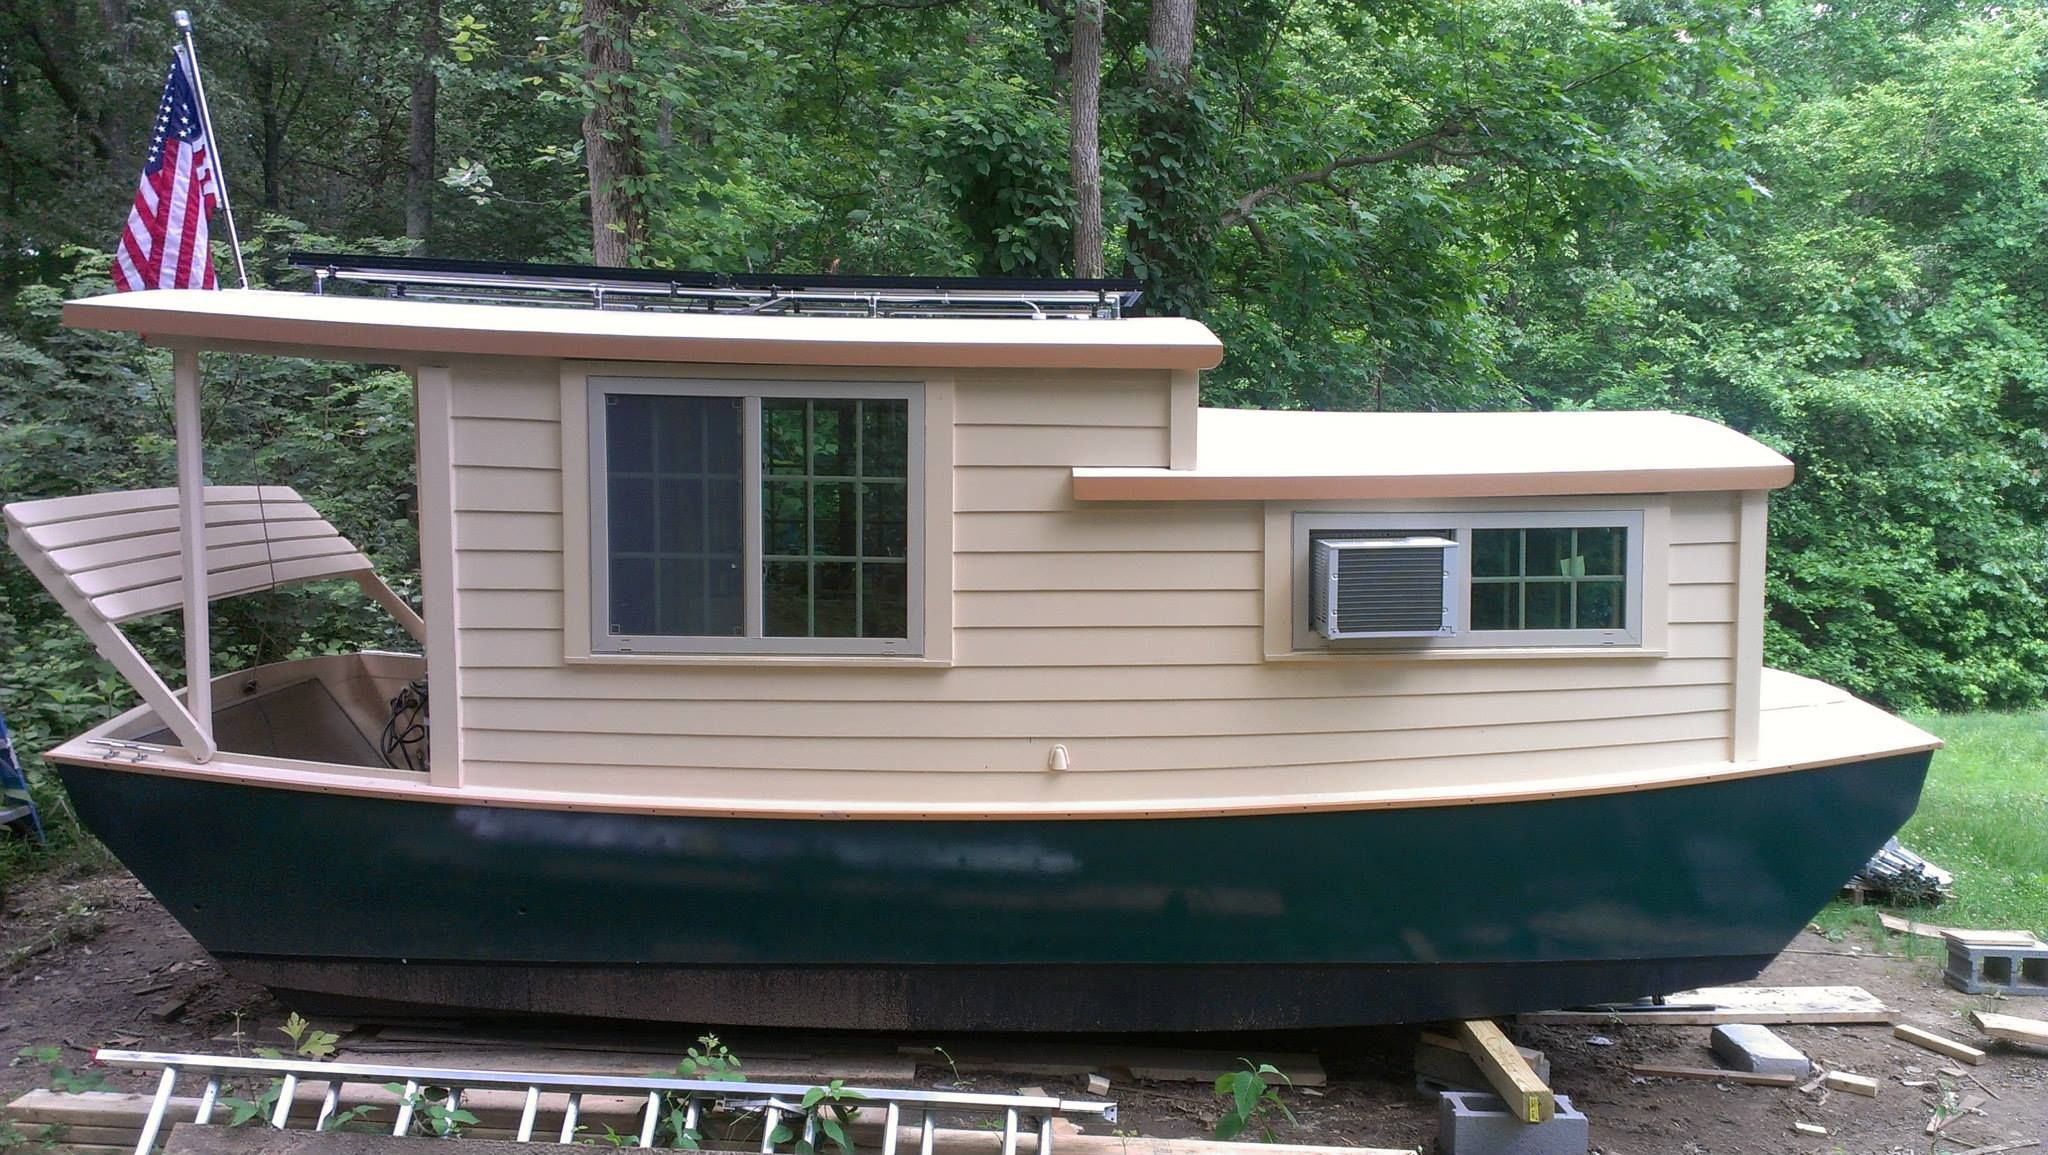 shanty boat | float houses and rafts | pinterest | boating, house